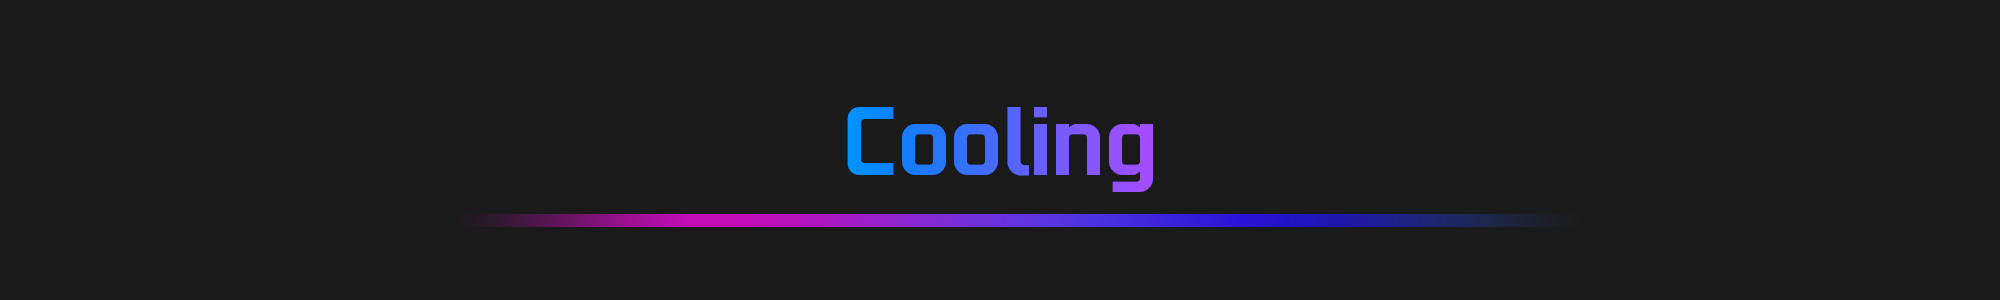 Cooling_title.png